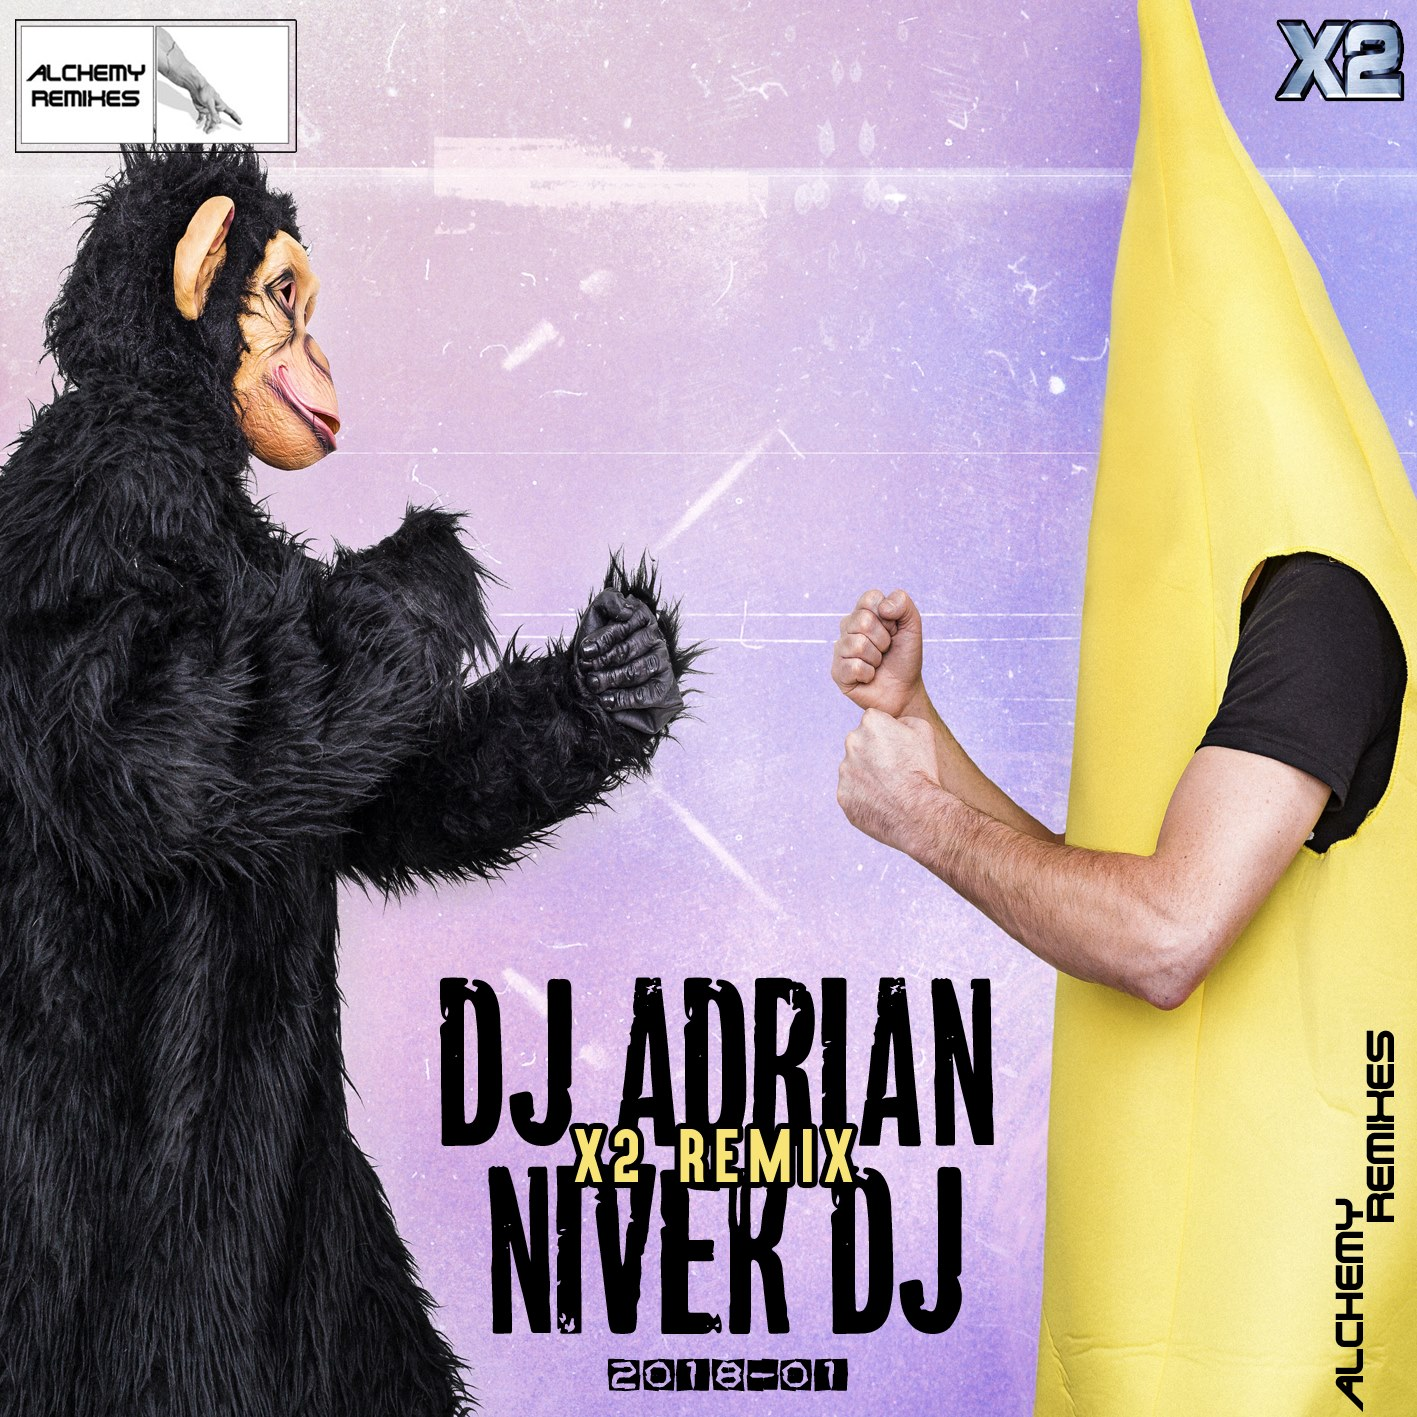 Dj Adrian Ft. Niver Dj Vol. 1 X2 Remix (2018)